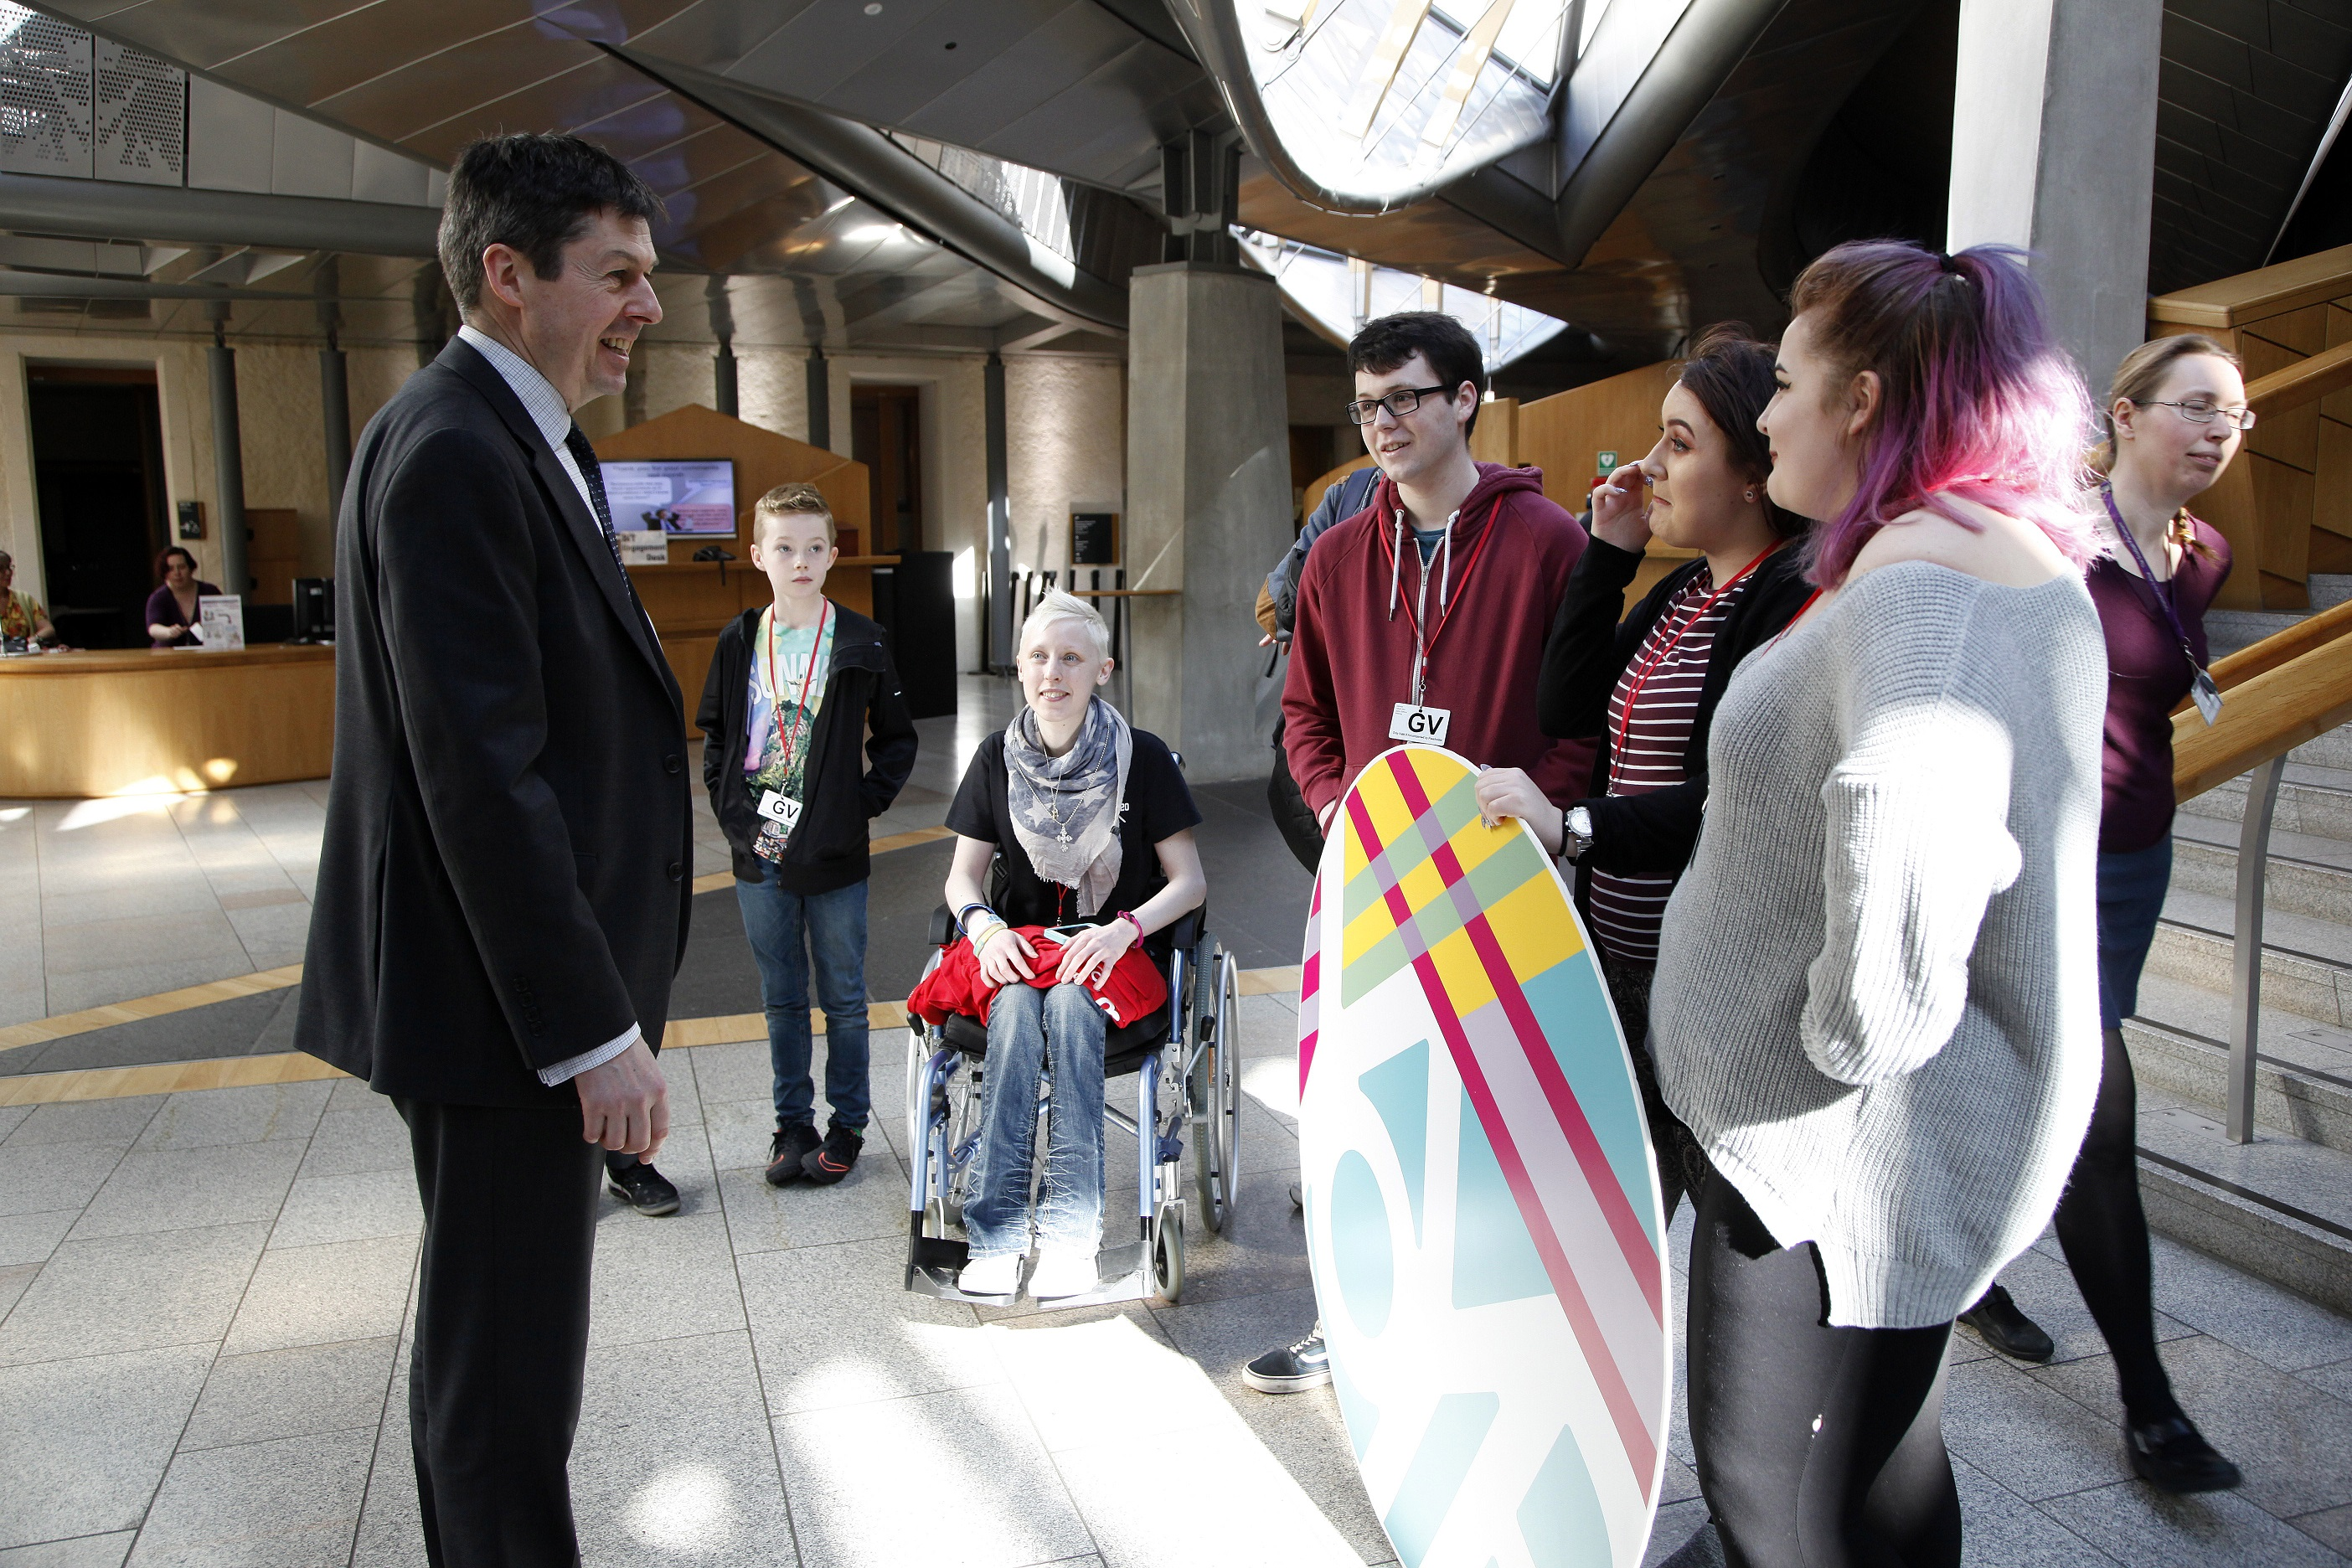 Presiding Officer Ken Macintosh MSP is joined by members of Young Scot as they launch the logo for 2018 the Year of Young People in the garden lobby at the Scottish Parliaemnt. 21 March 2017. Pic - Andrew Cowan/Scottish Parliament